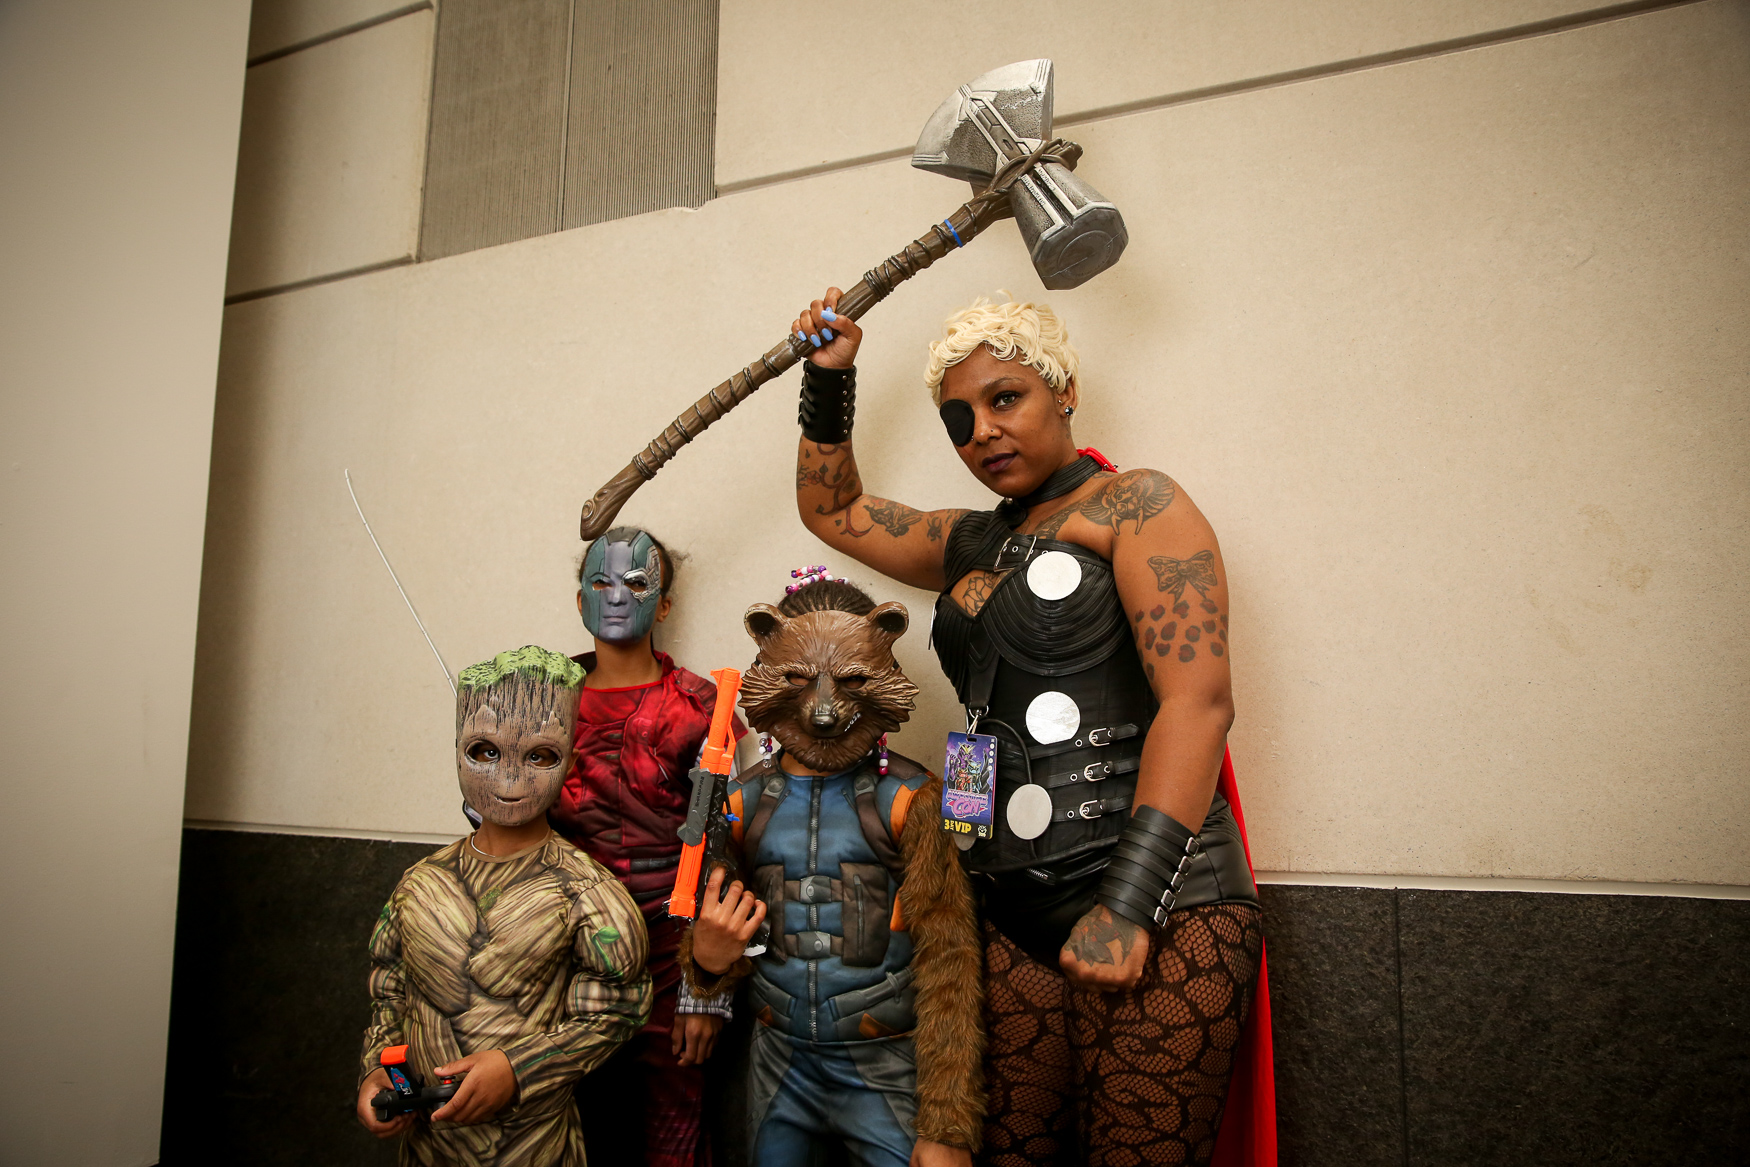 Nearly 80,000 people showed up to the Walter E. Washington Convention Center dressed to the nines over the course of three days for Awesome Con 2019. As always, we were blown away by the level of creativity we saw with the cosplay costumes at the convention.{ } Our photographer was on hand making cosplay portraits for day one and two of the convention. Here is a collection of some of our favorite cosplayers we saw at Awesome Con 2019! (Image: Amanda Andrade-Rhoades/ DC Refined)